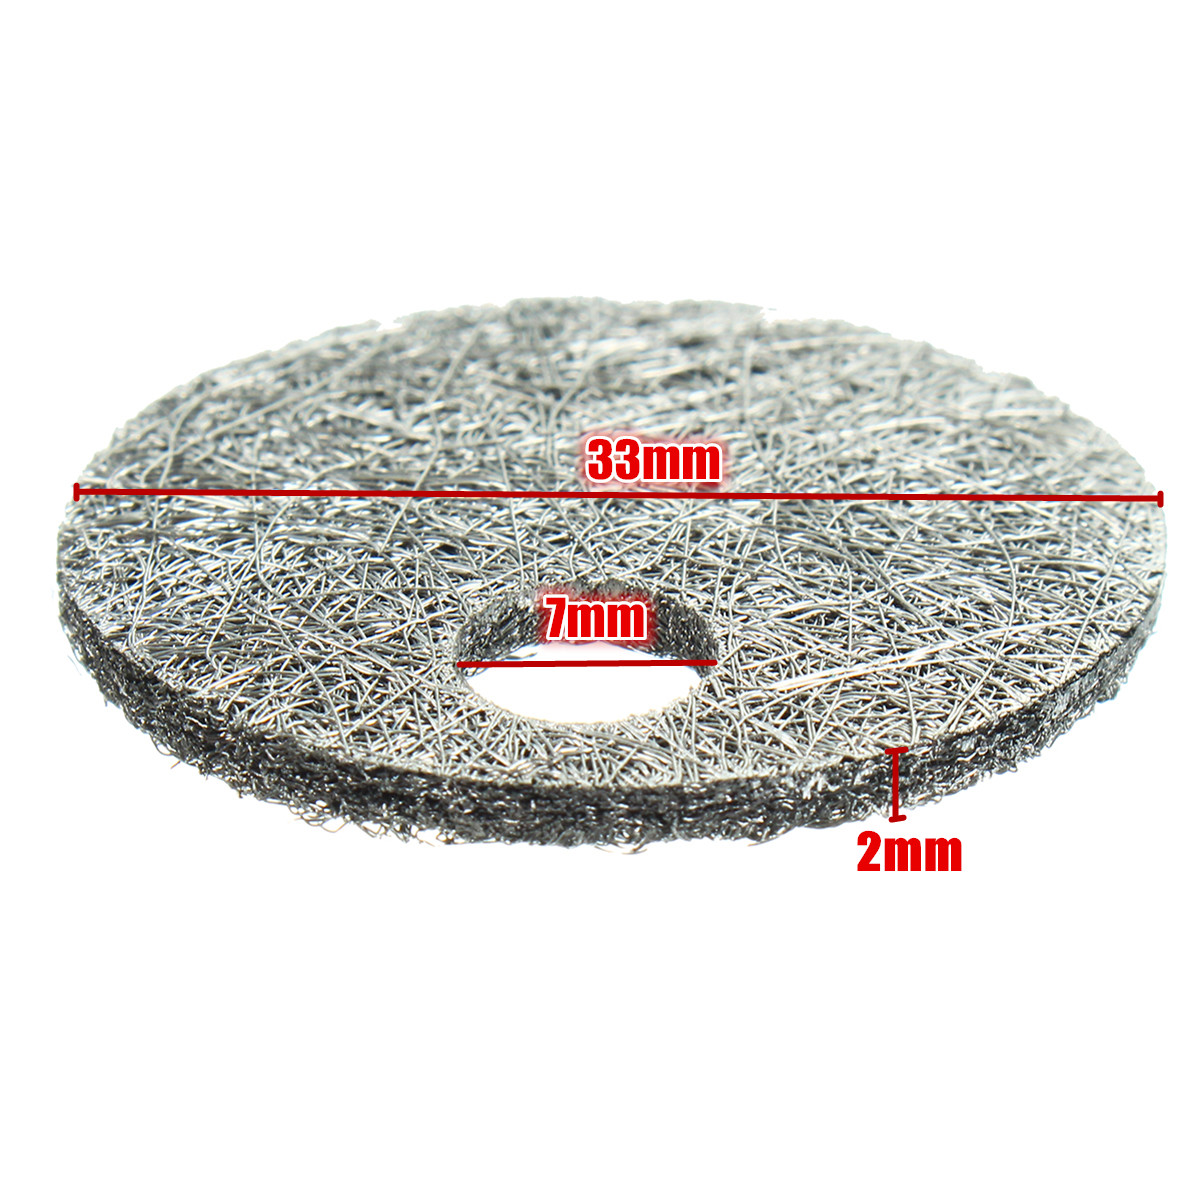 Car Heater Combustion Chamber Filter For Webasto Air Top 2000 ST